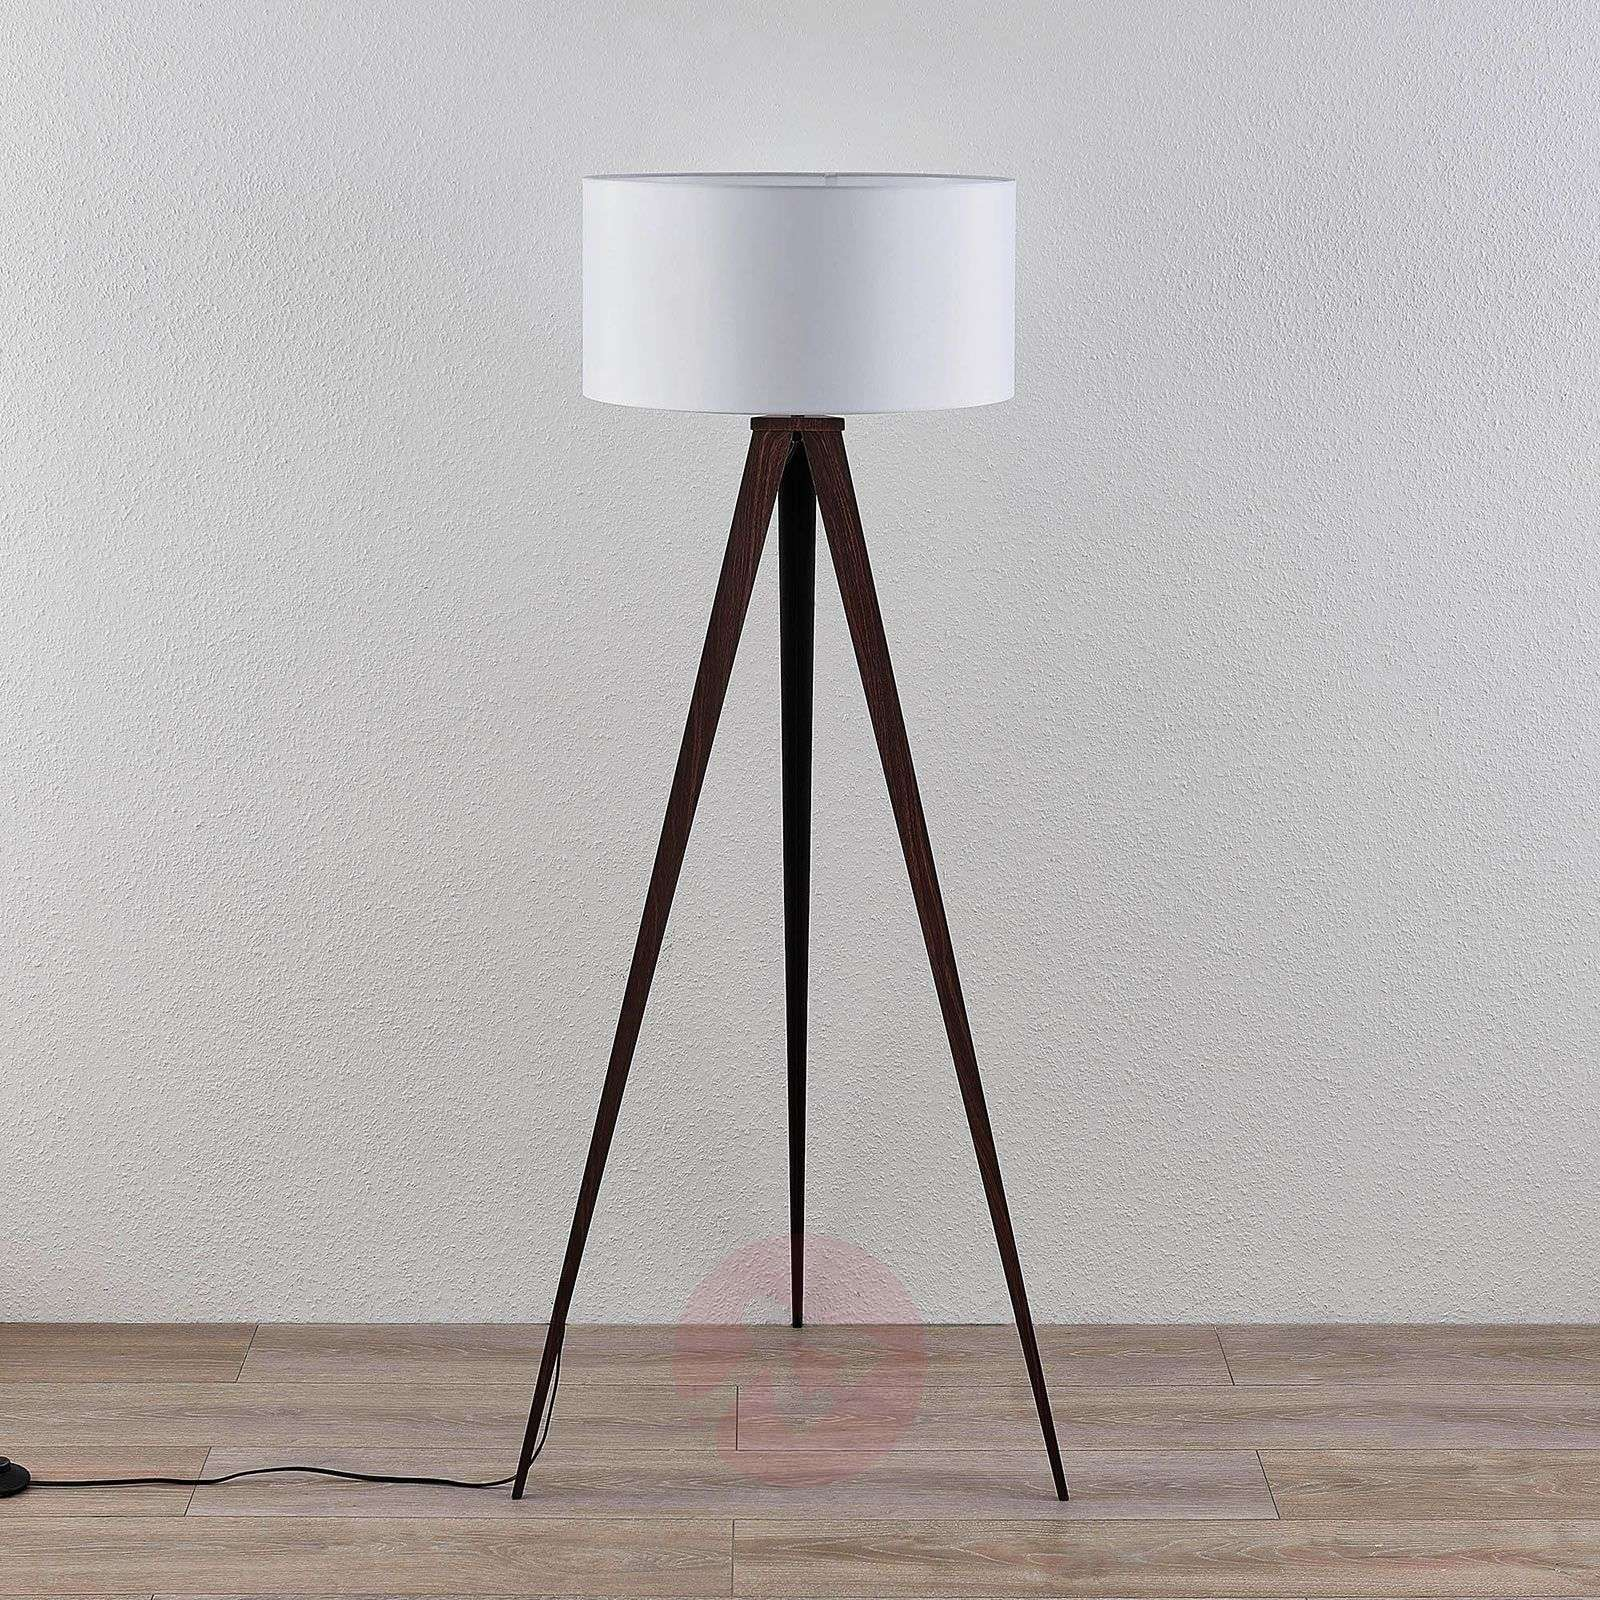 Benik tripod floor lamp, white lampshade, walnut-9624563-01